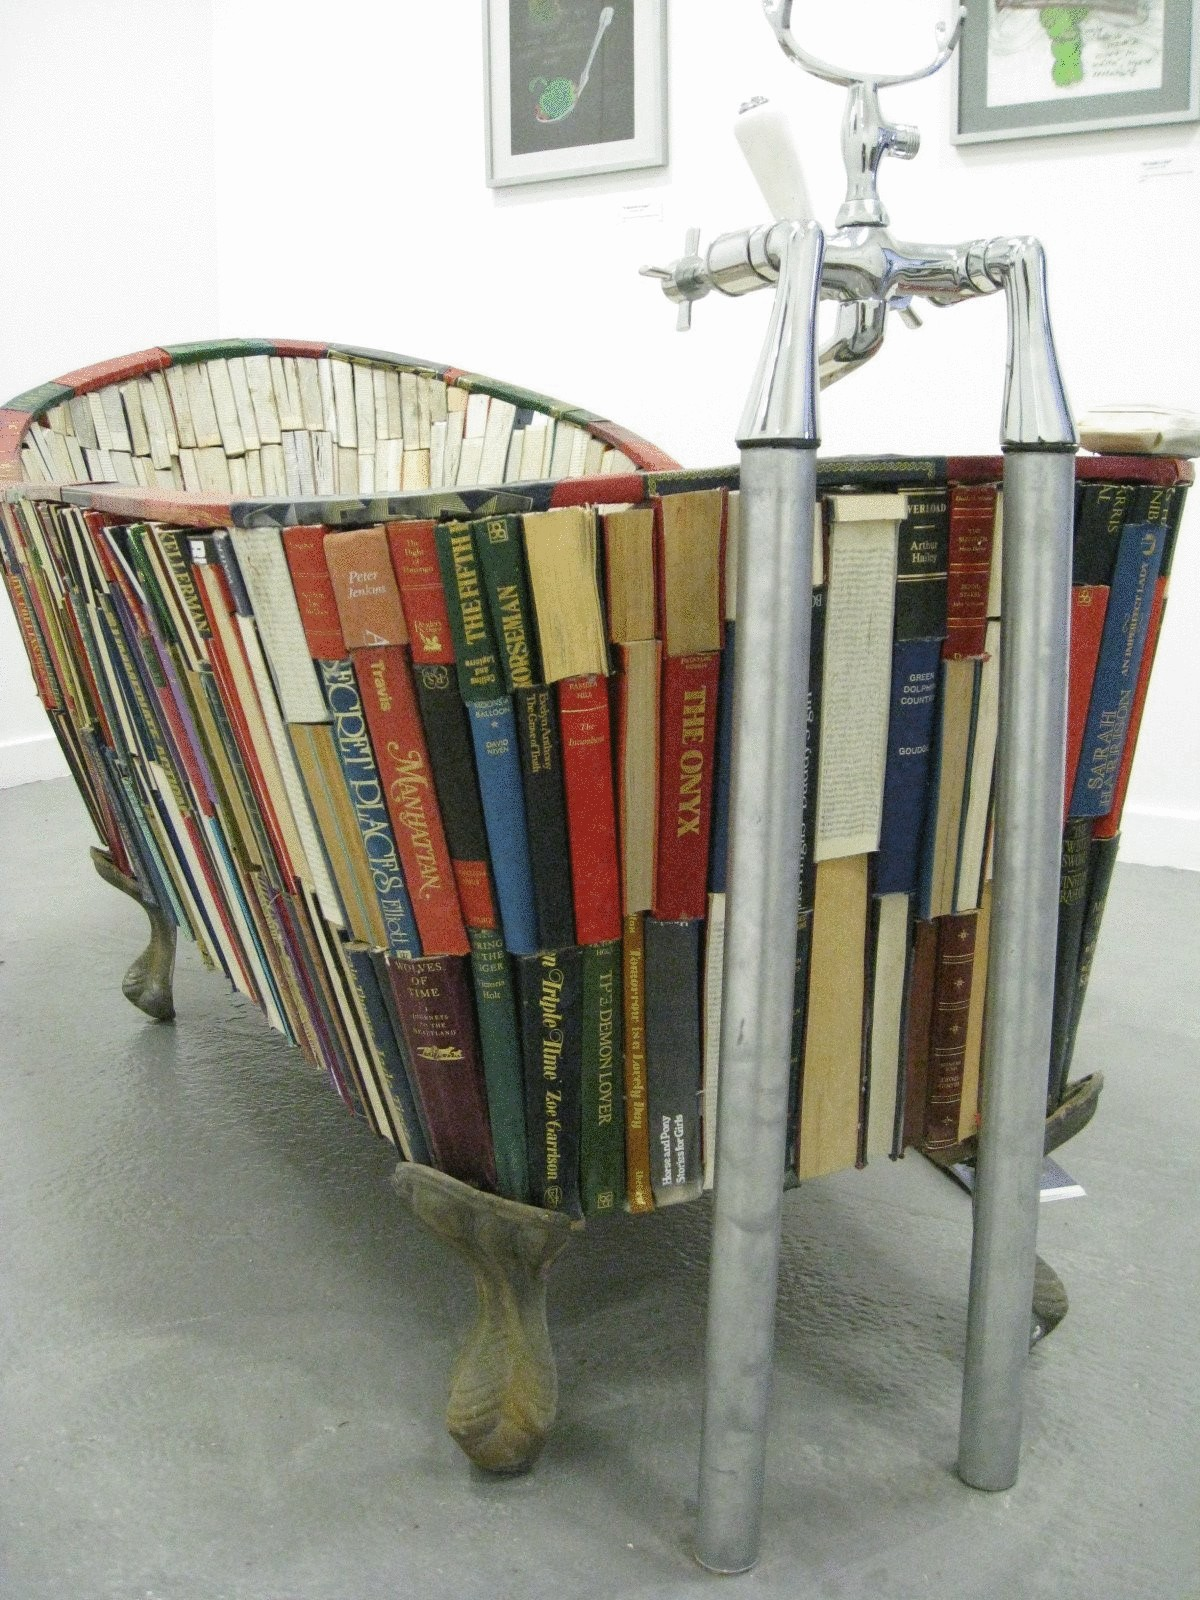 Bath of Knowledge